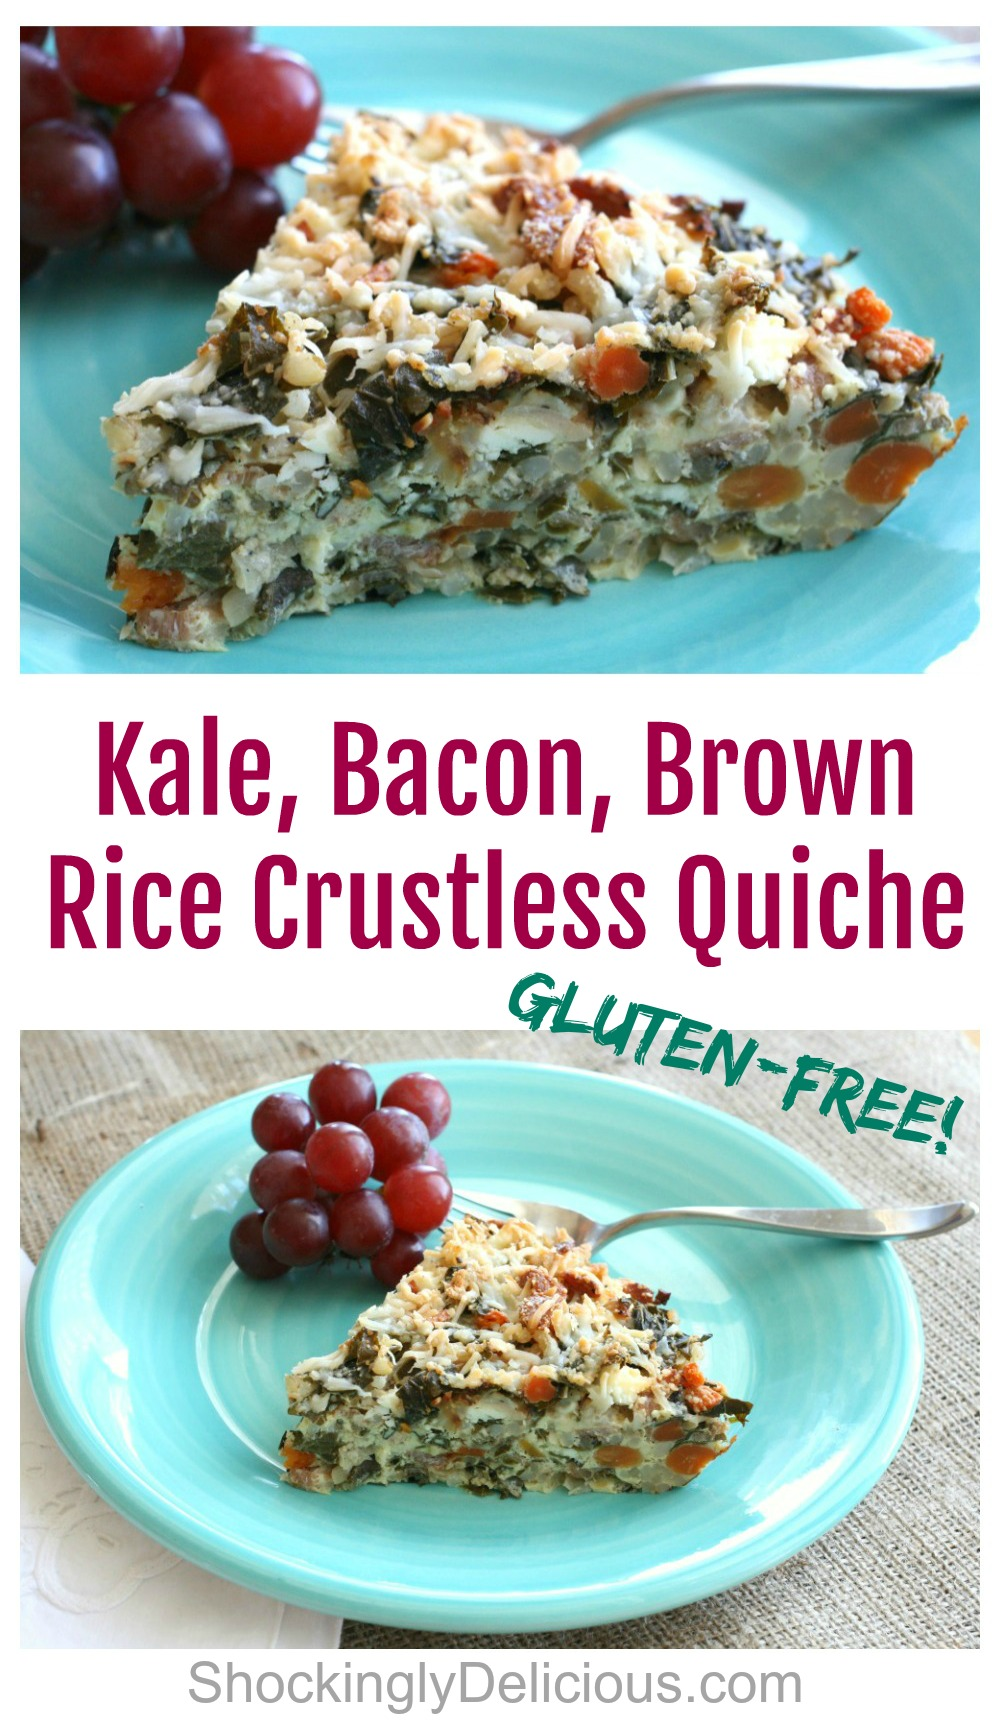 2 photos of Kale, Bacon, Brown Rice Crustless Quiche